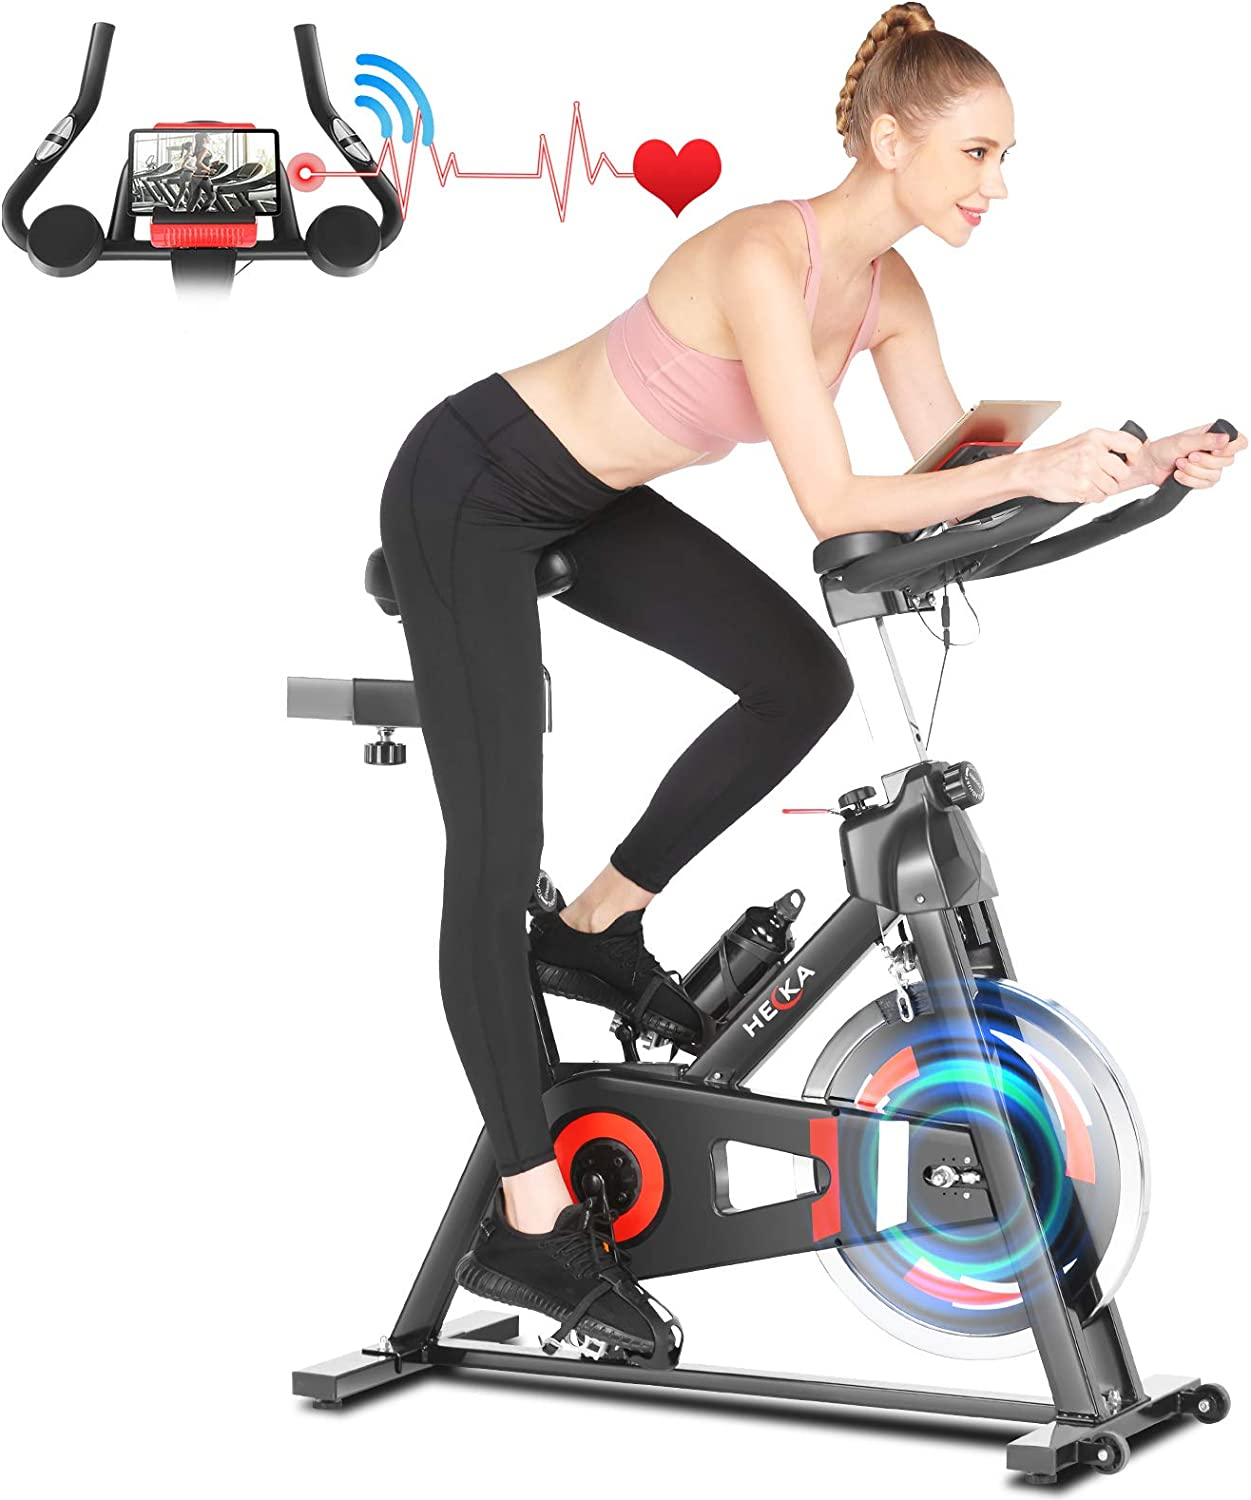 Heka Exercise Price reduction Bike Indoor Cycling Translated lbs Flywhe Stationary 45